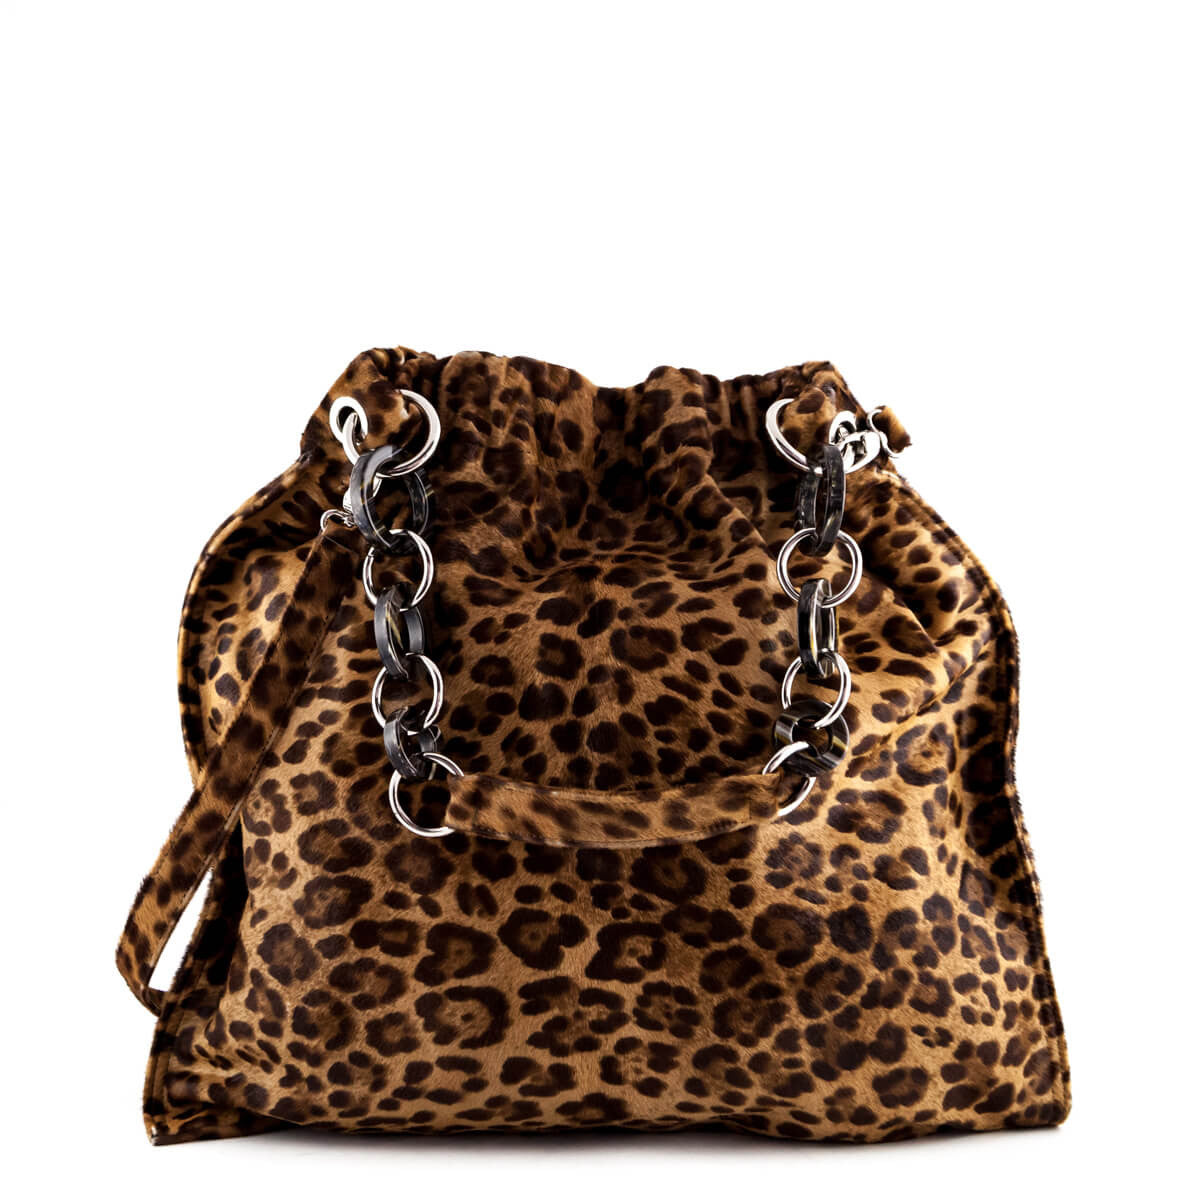 323fe3018dfe Almala Firenze Leopard Print Pony Hair Tote - LOVE that BAG - Preowned  Authentic Designer Handbags ...